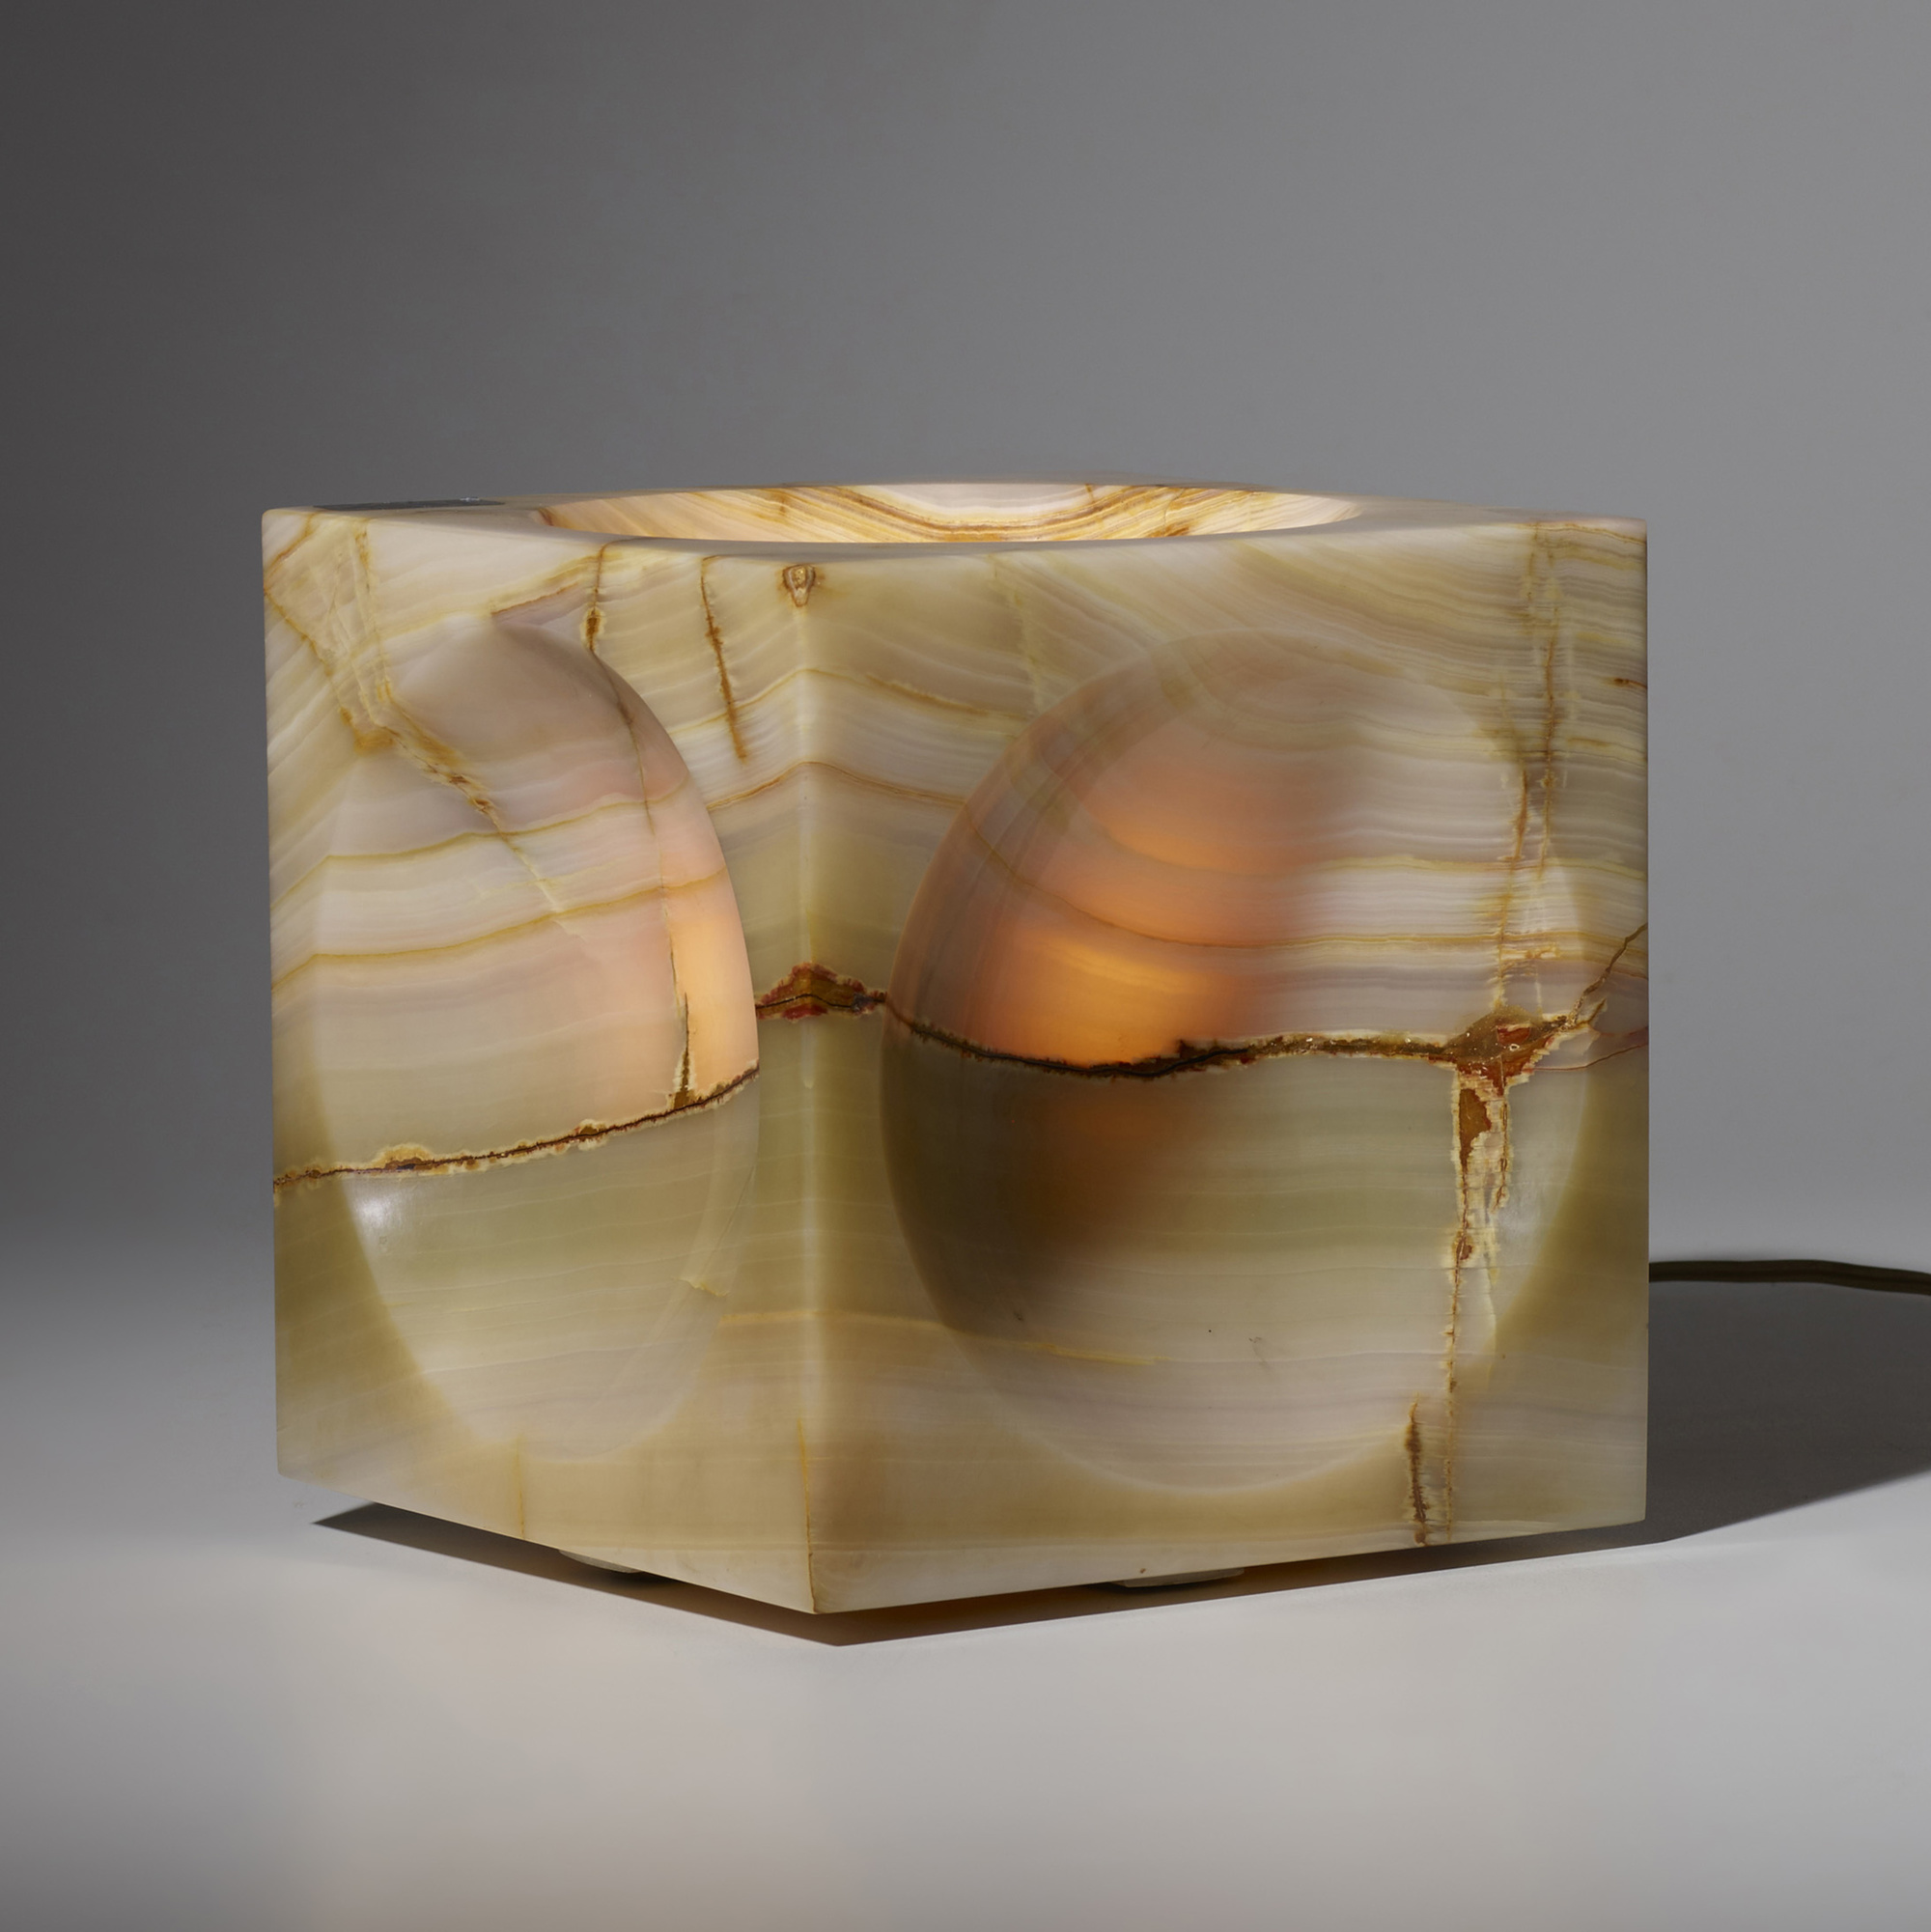 296: Angelo Mangiarotti / Cube table lamp (2 of 3)